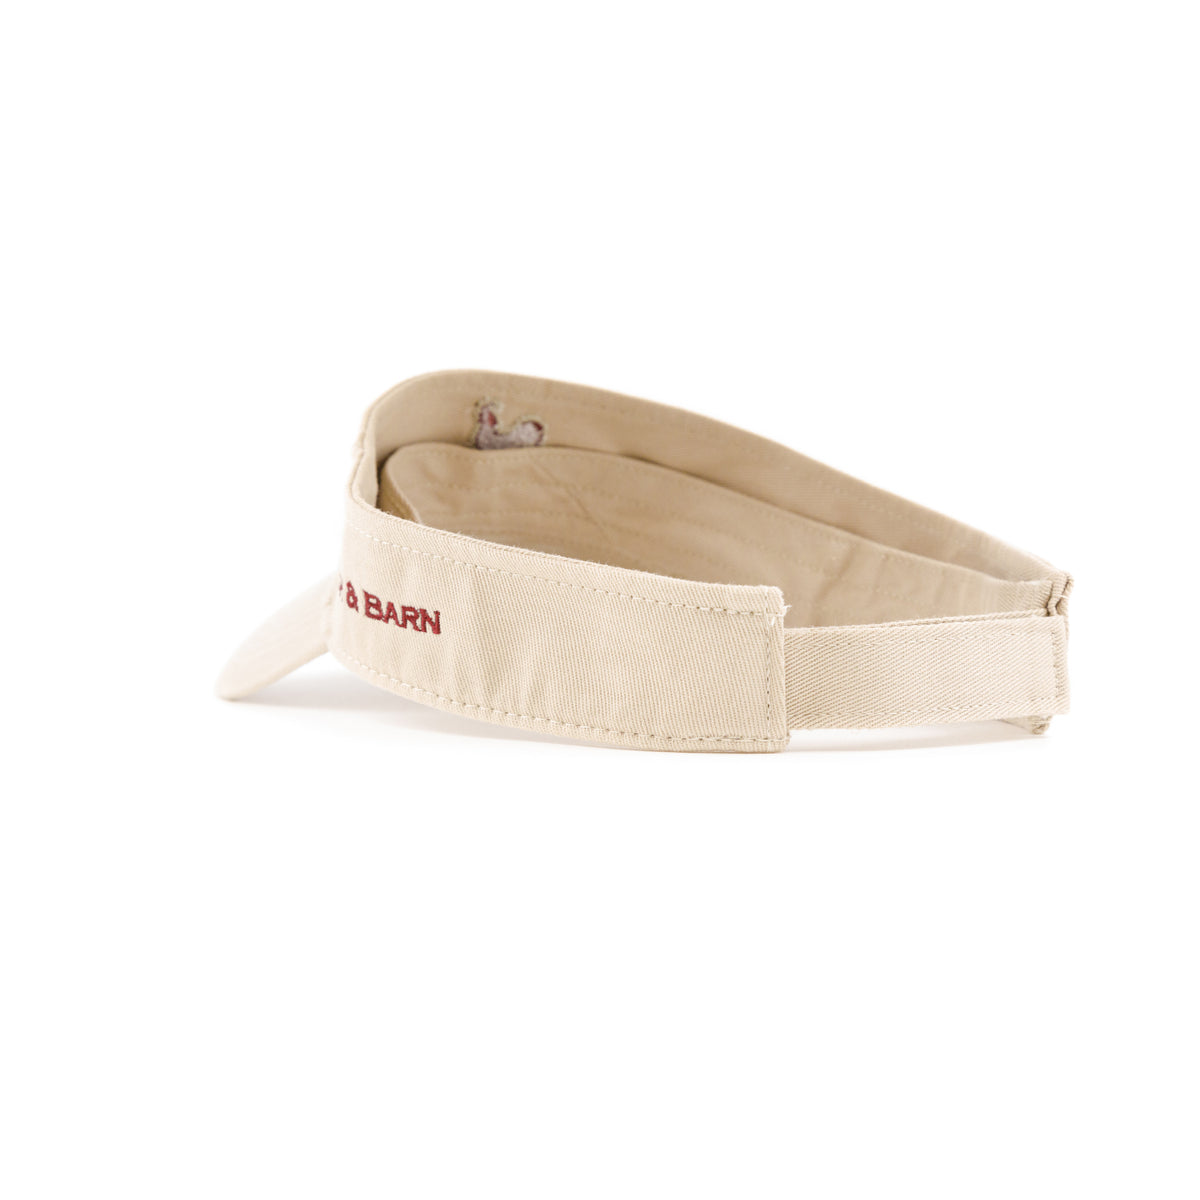 Coastal Country Club Visor